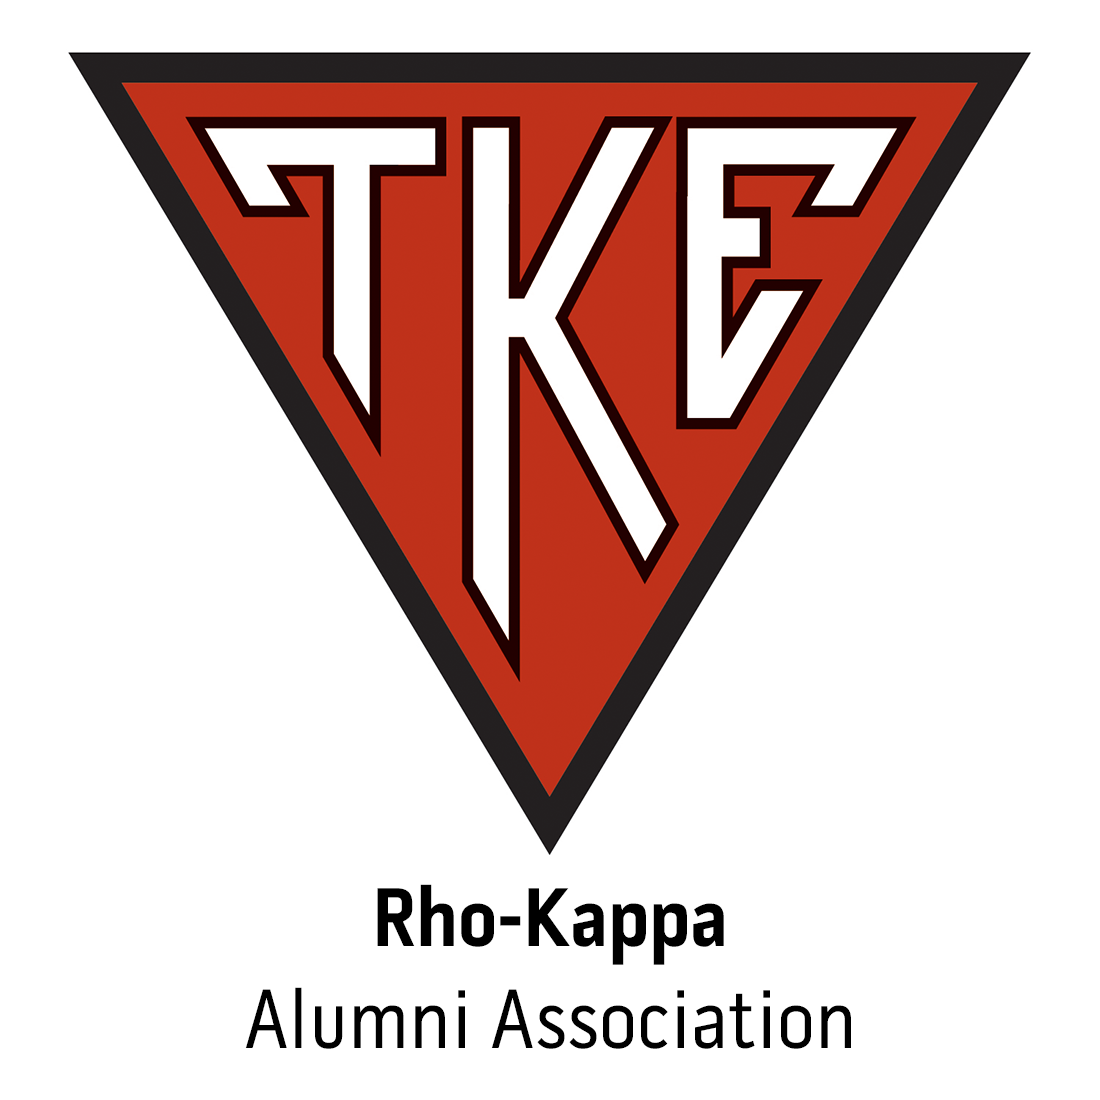 Rho-Kappa Alumni Association at Longwood University